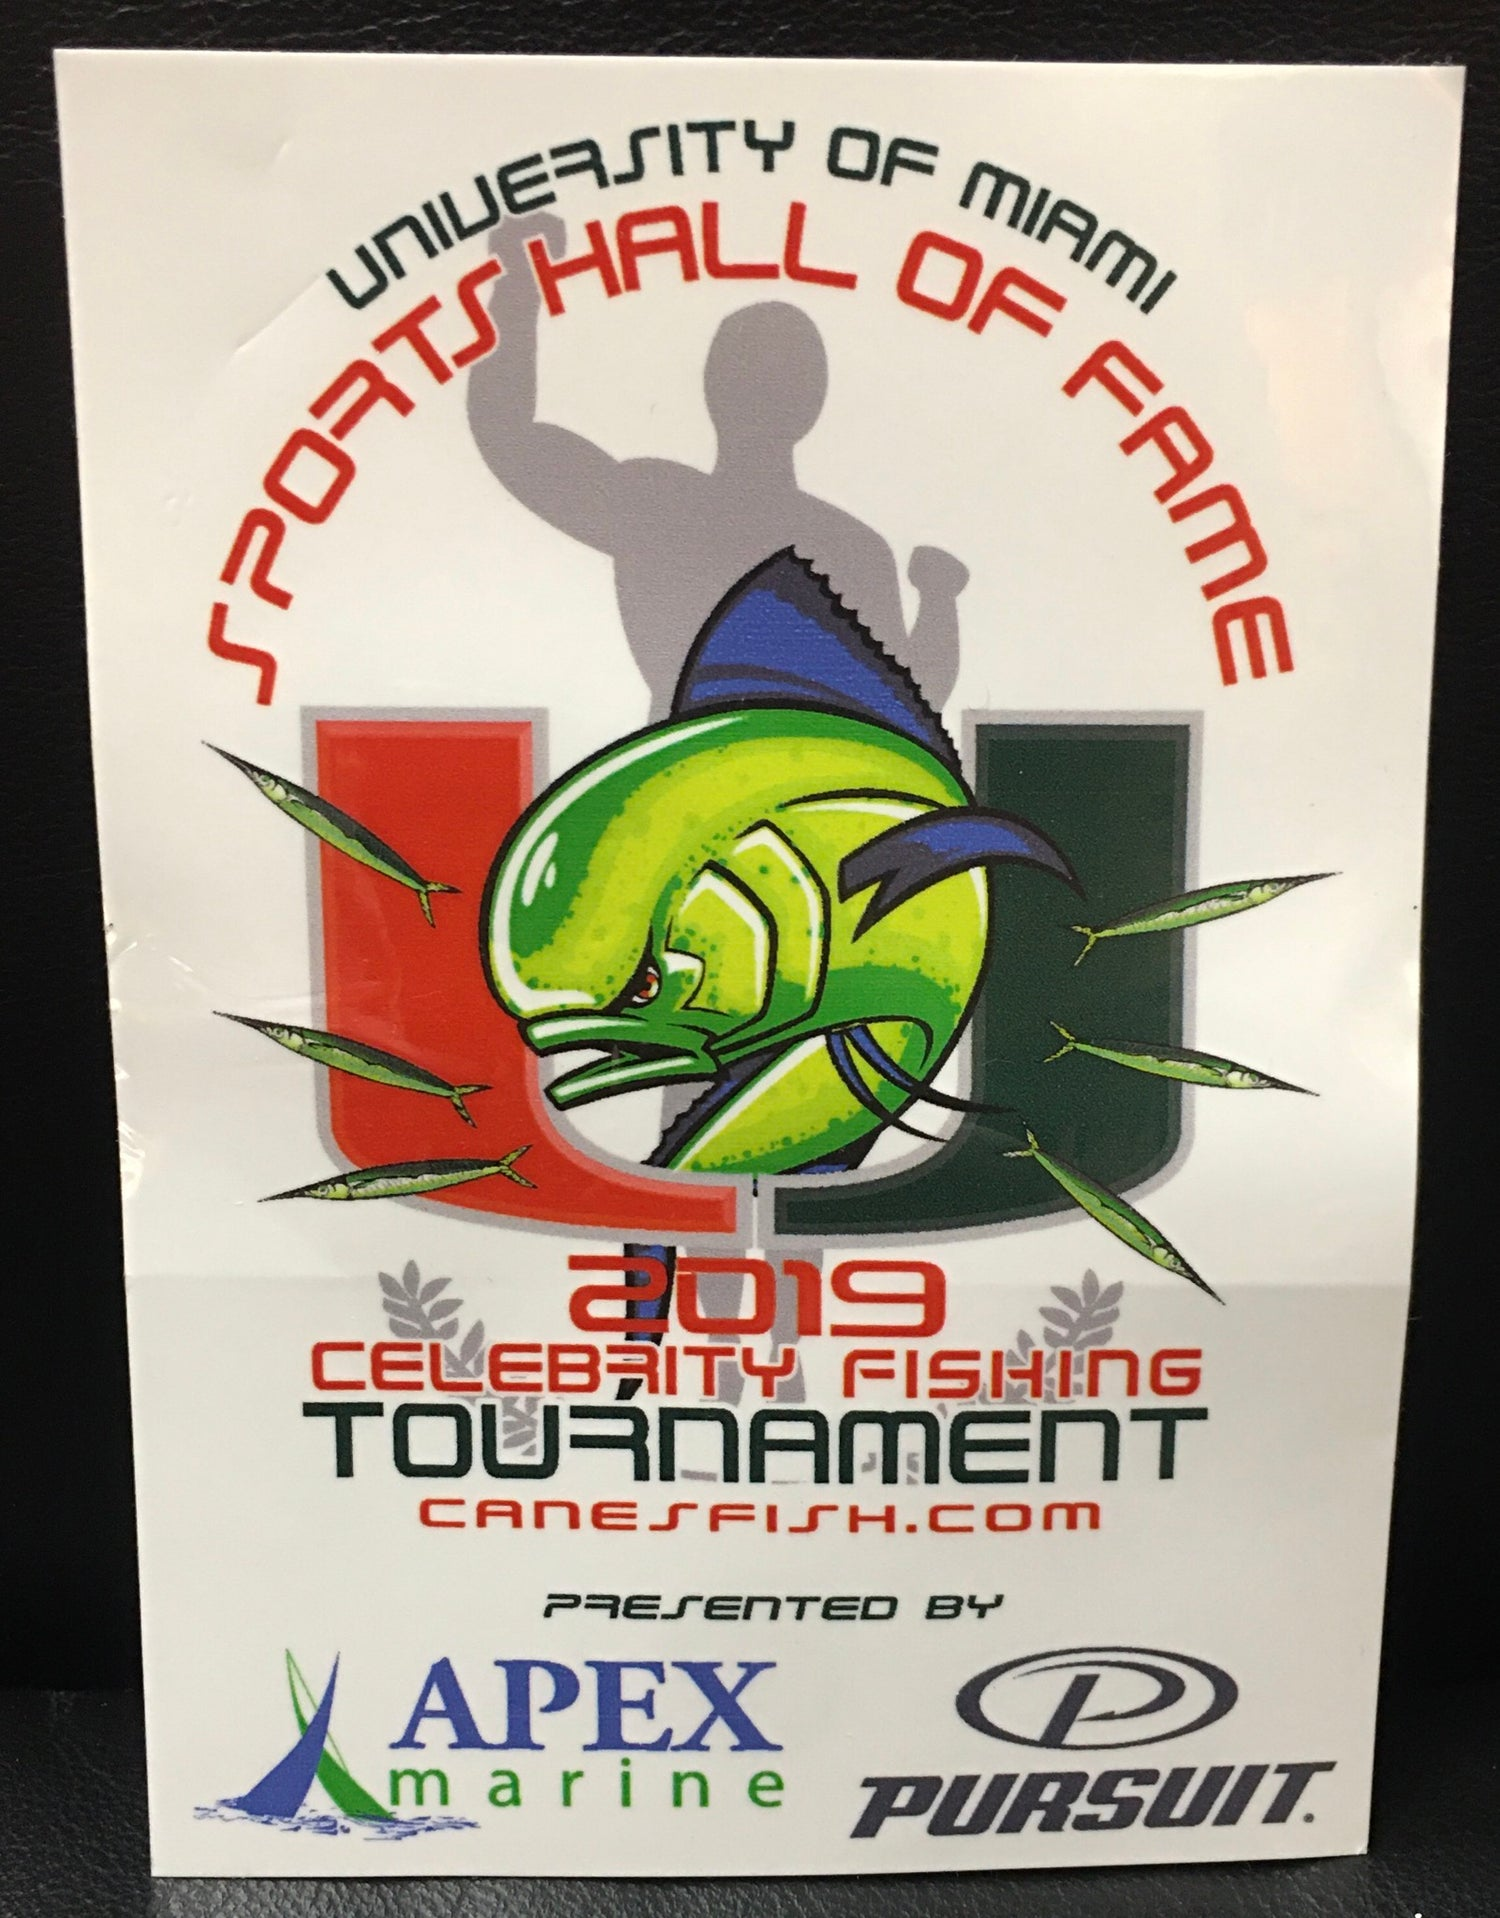 Image of 2019 UMSHoF Celebrity Fishing Tournament Sticker